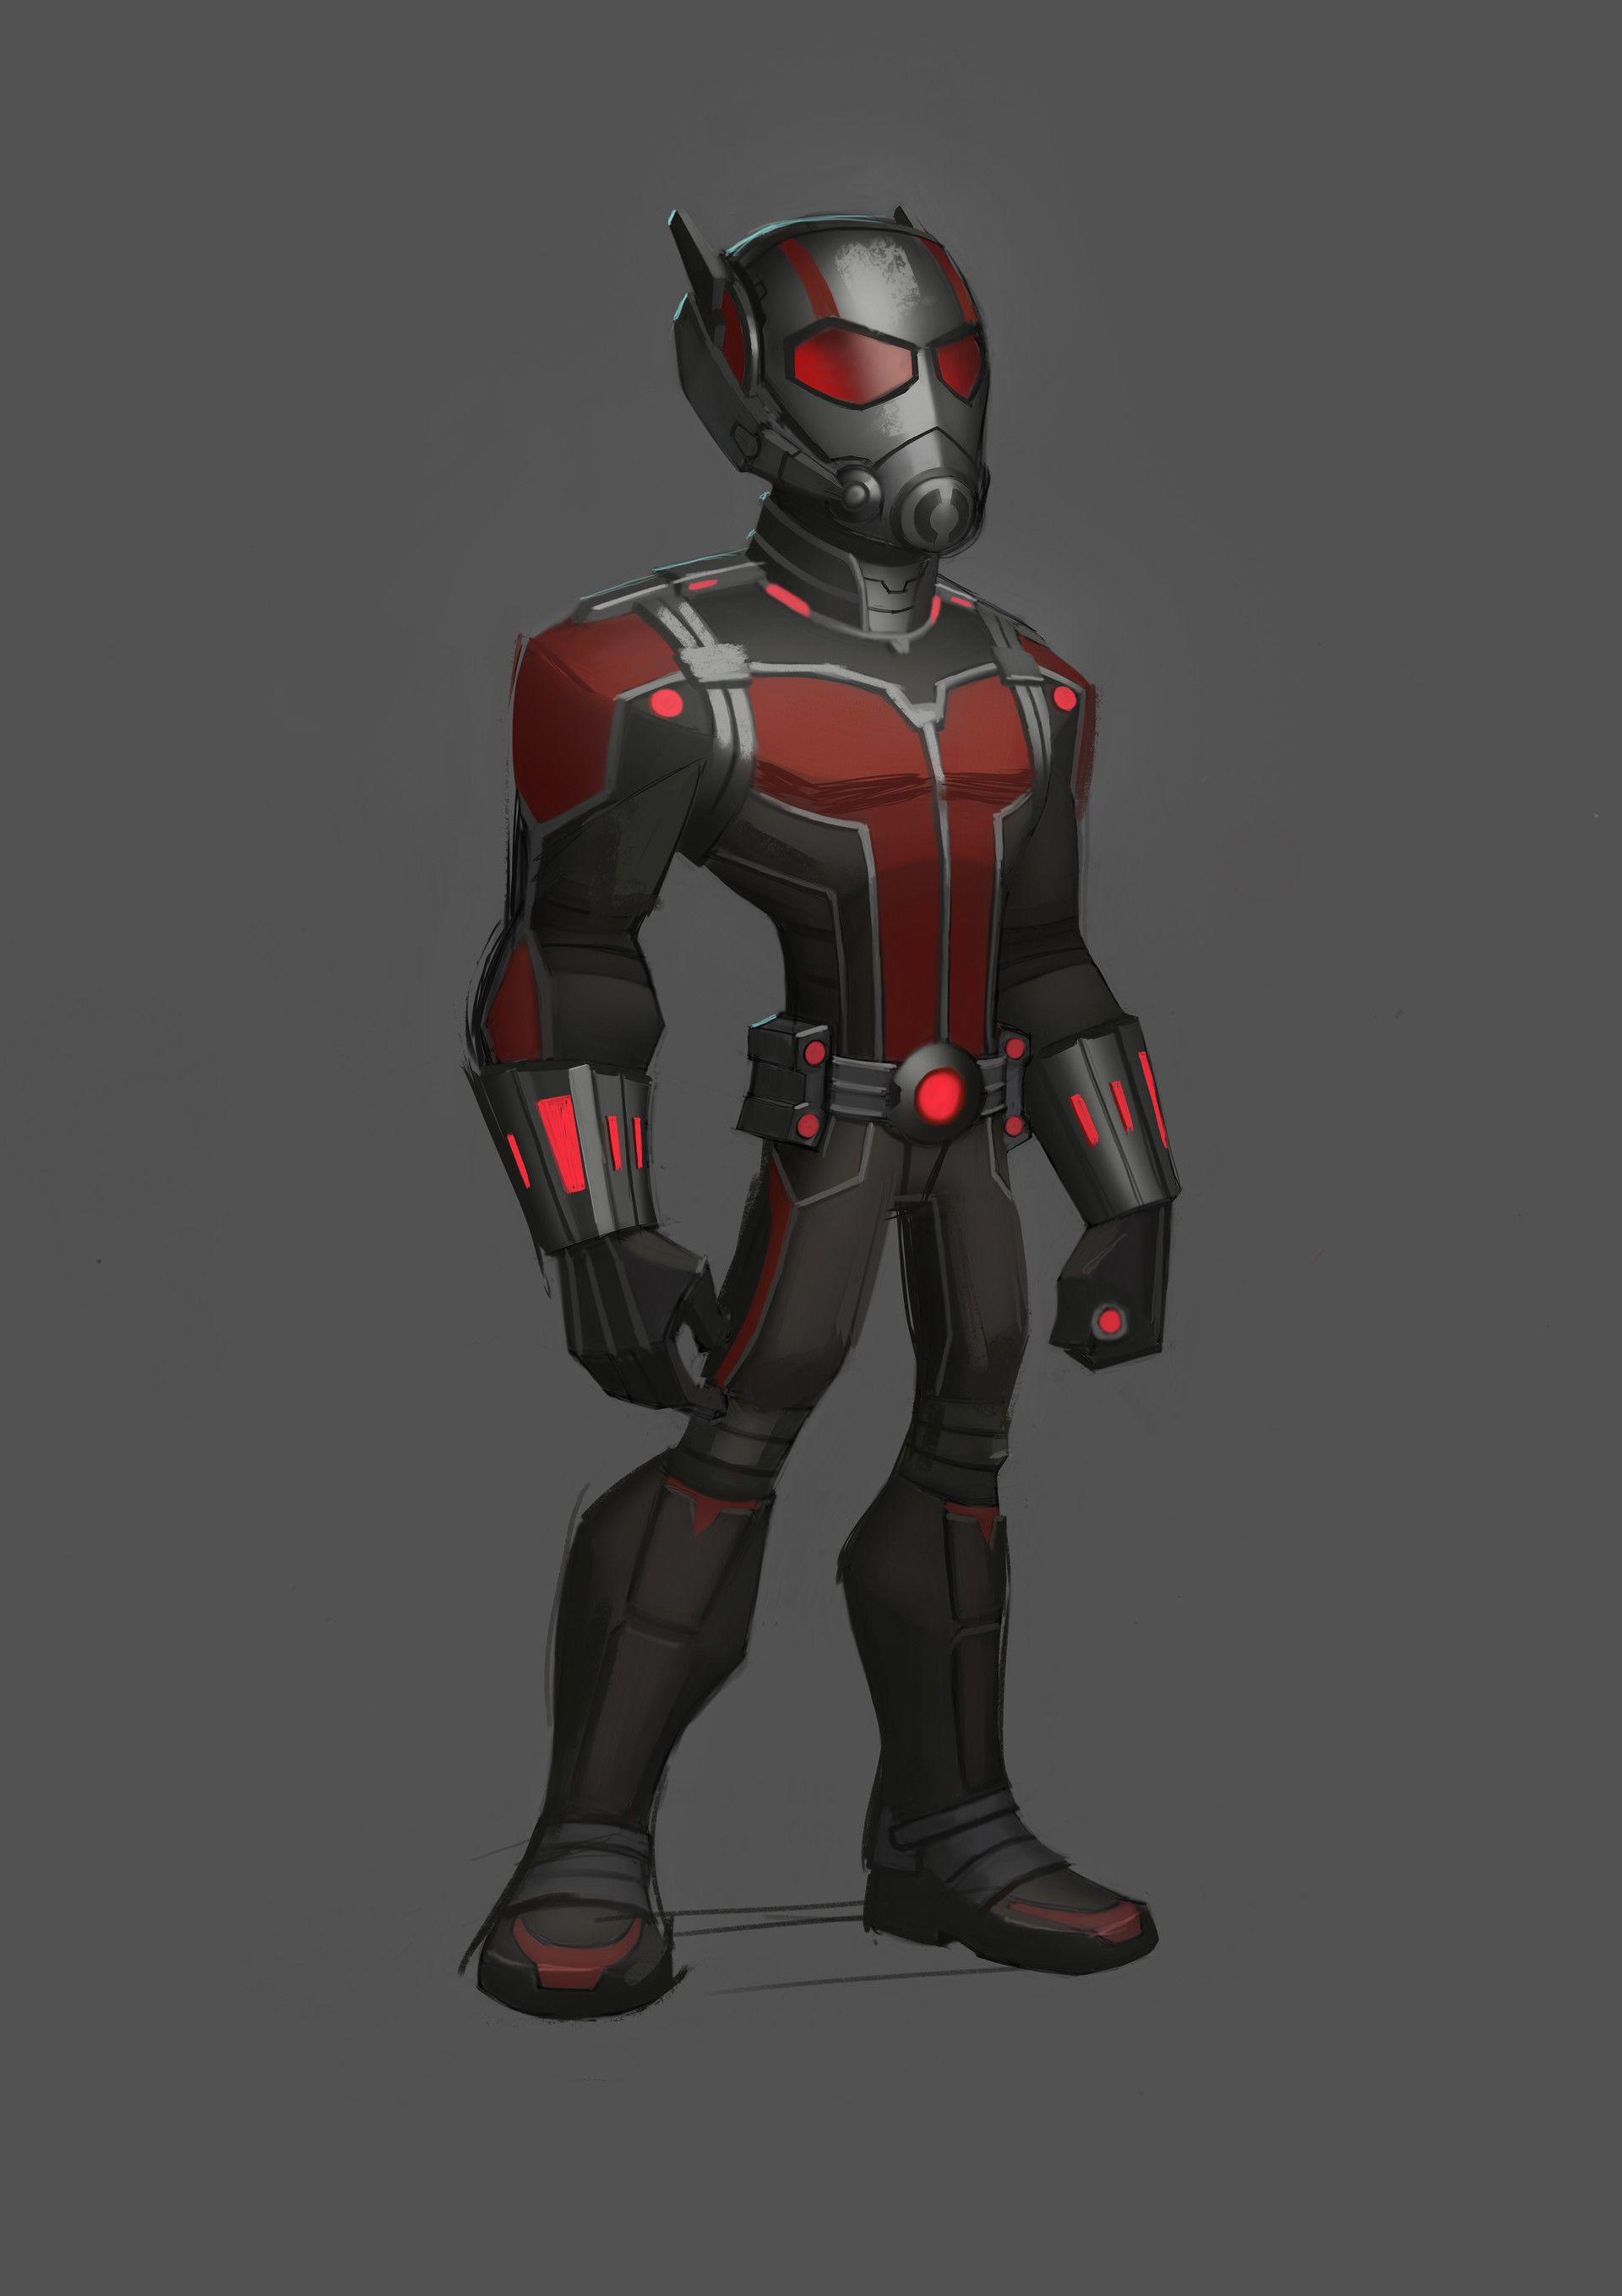 artstation - antman design for disney infinity marvel, josh black